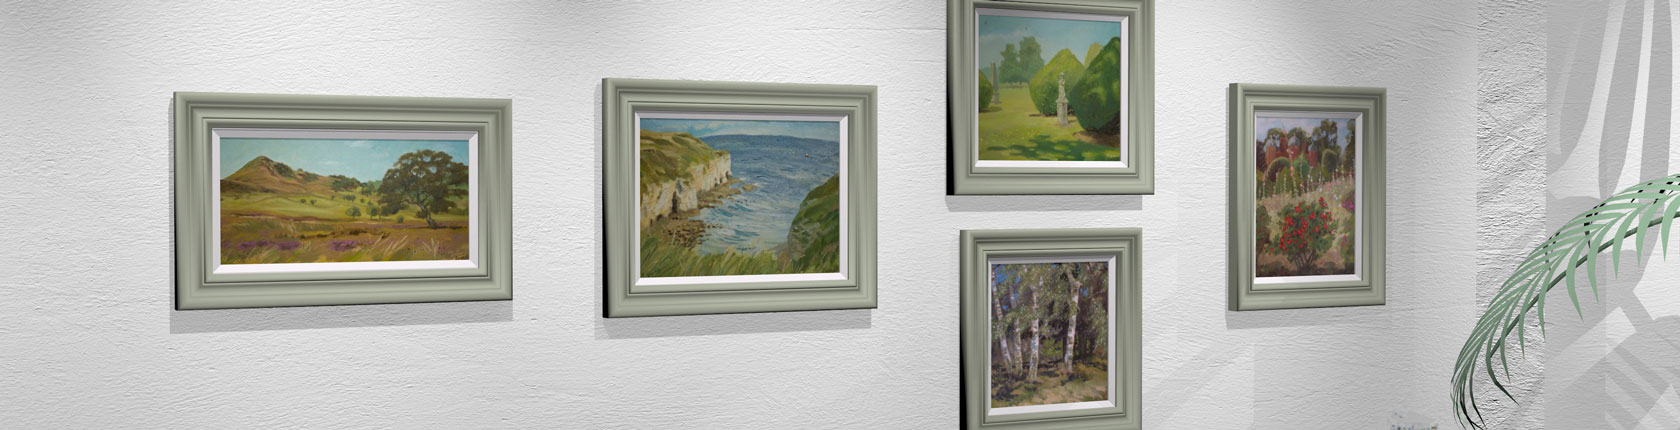 Plein air paintings on display in a gallery space